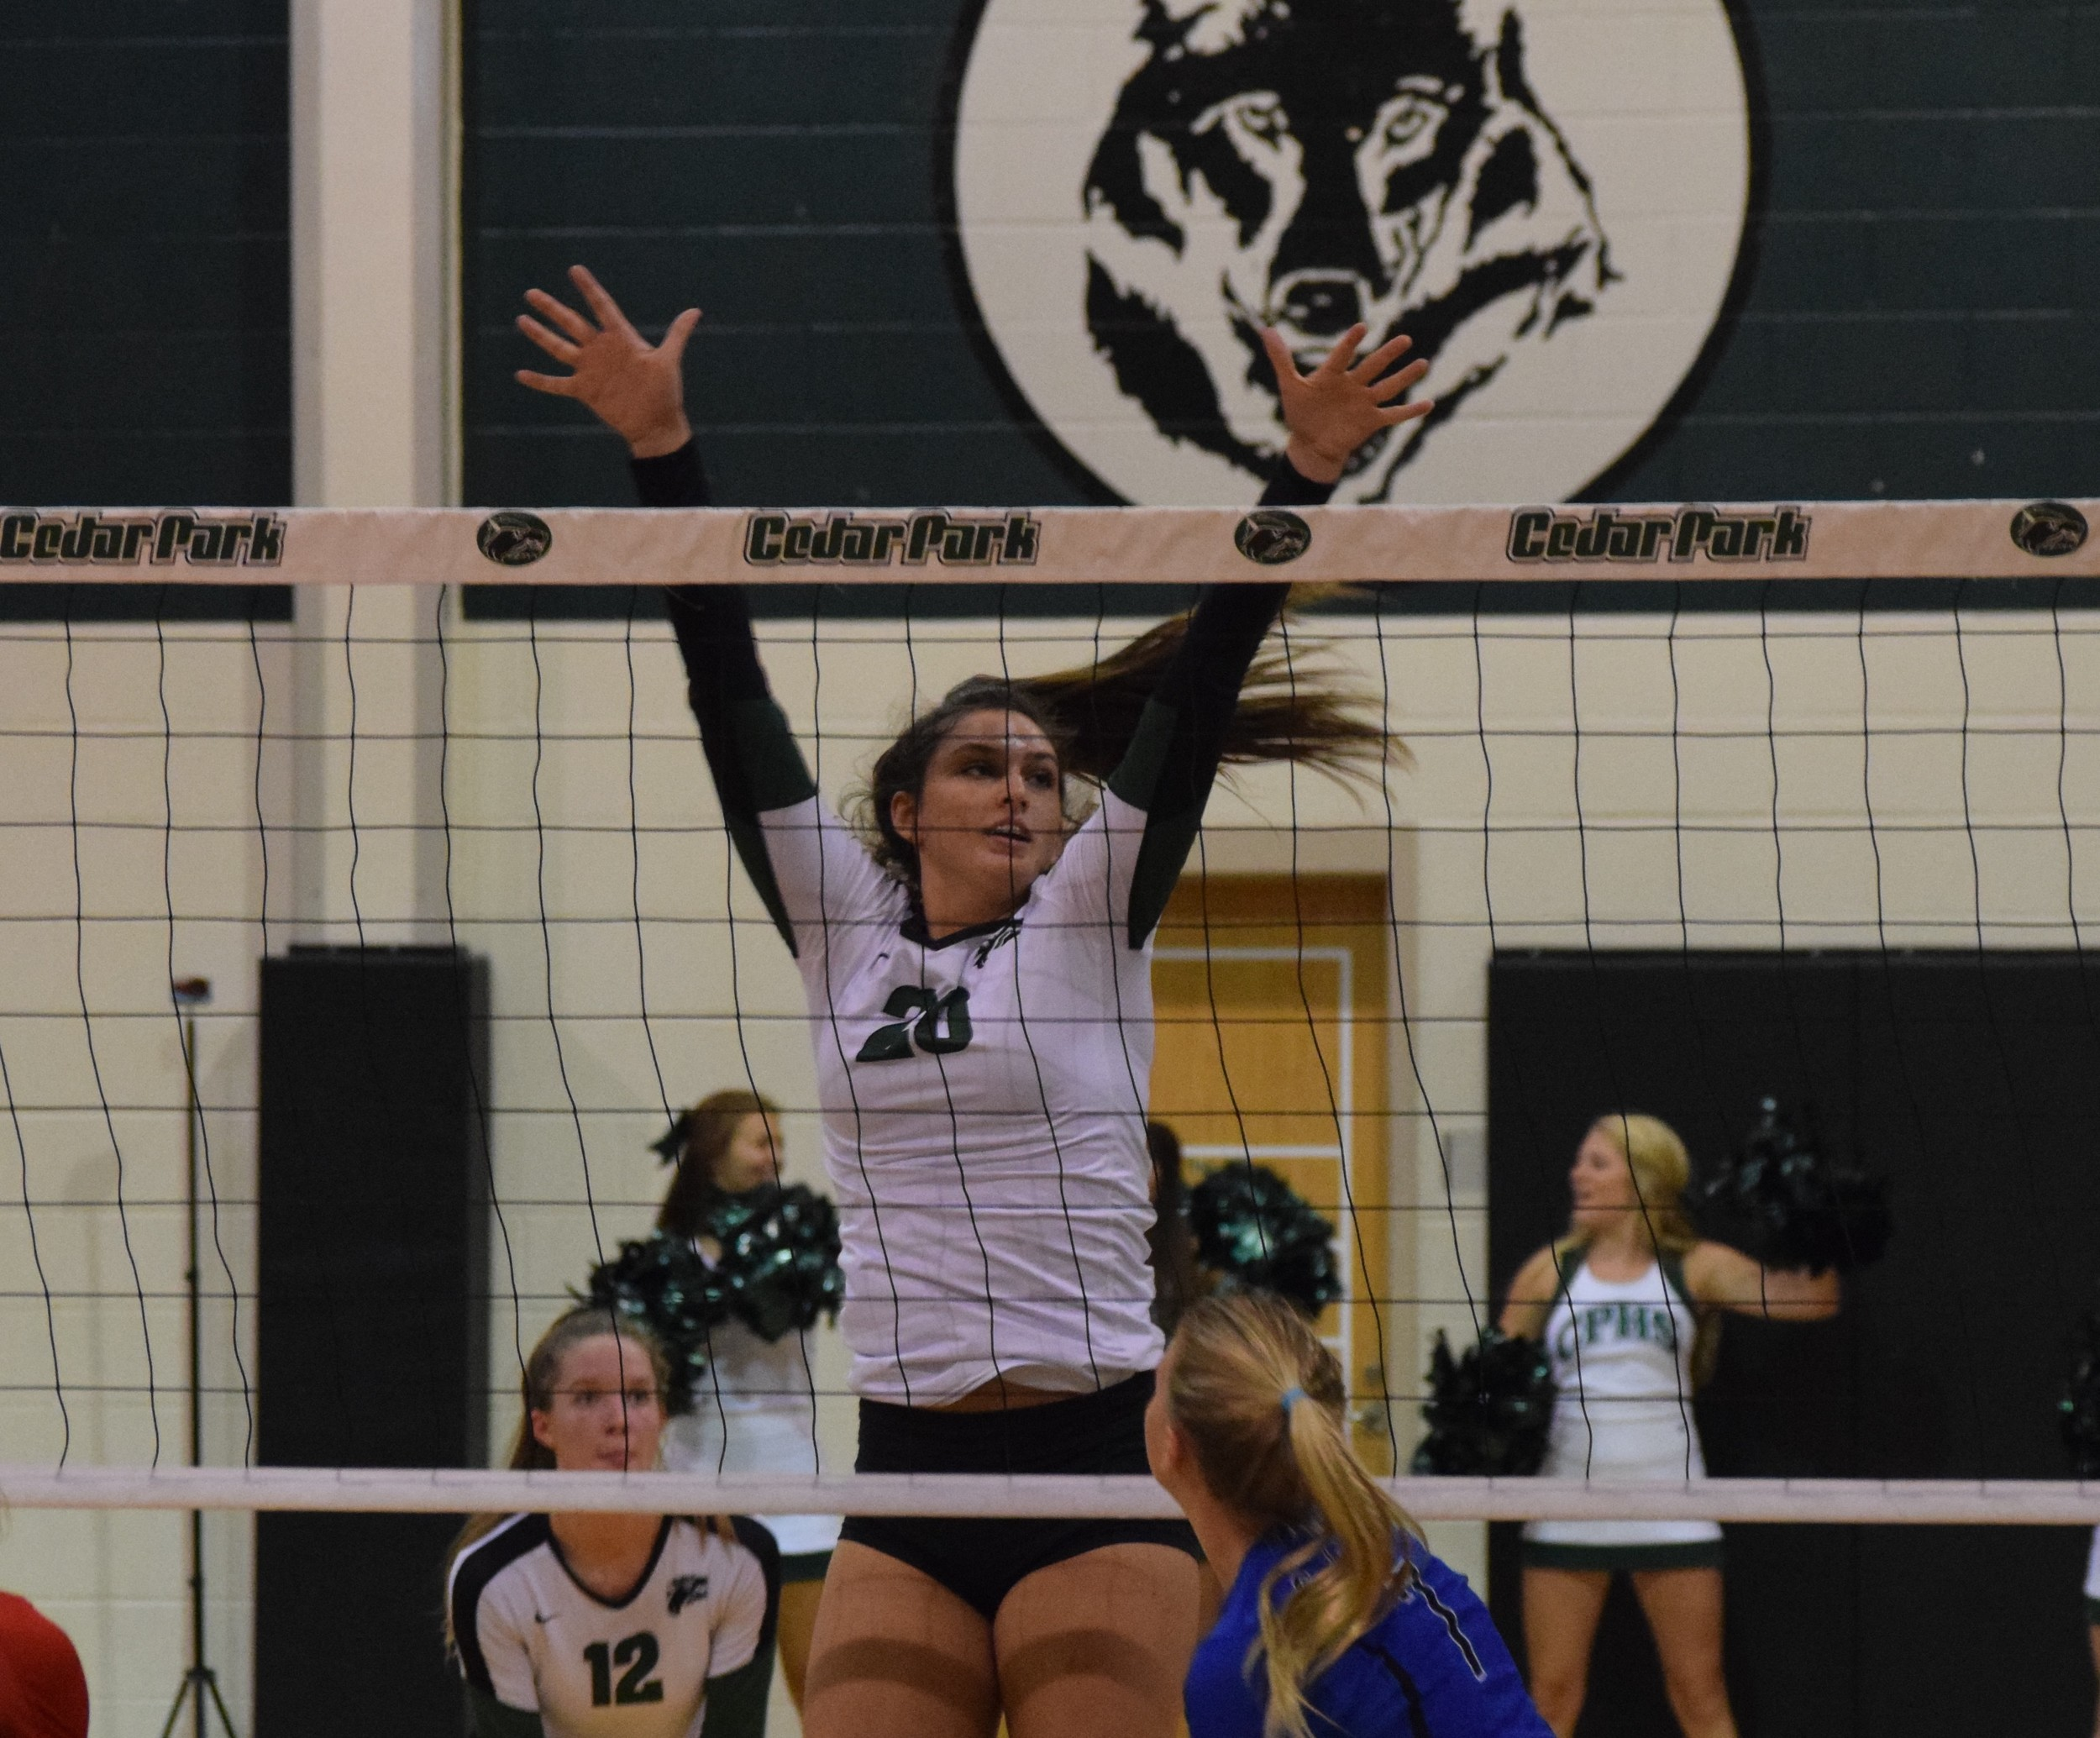 Shelby Epley and Cedar Park beat Cedar Creek 3-1 at home on Tuesday night.